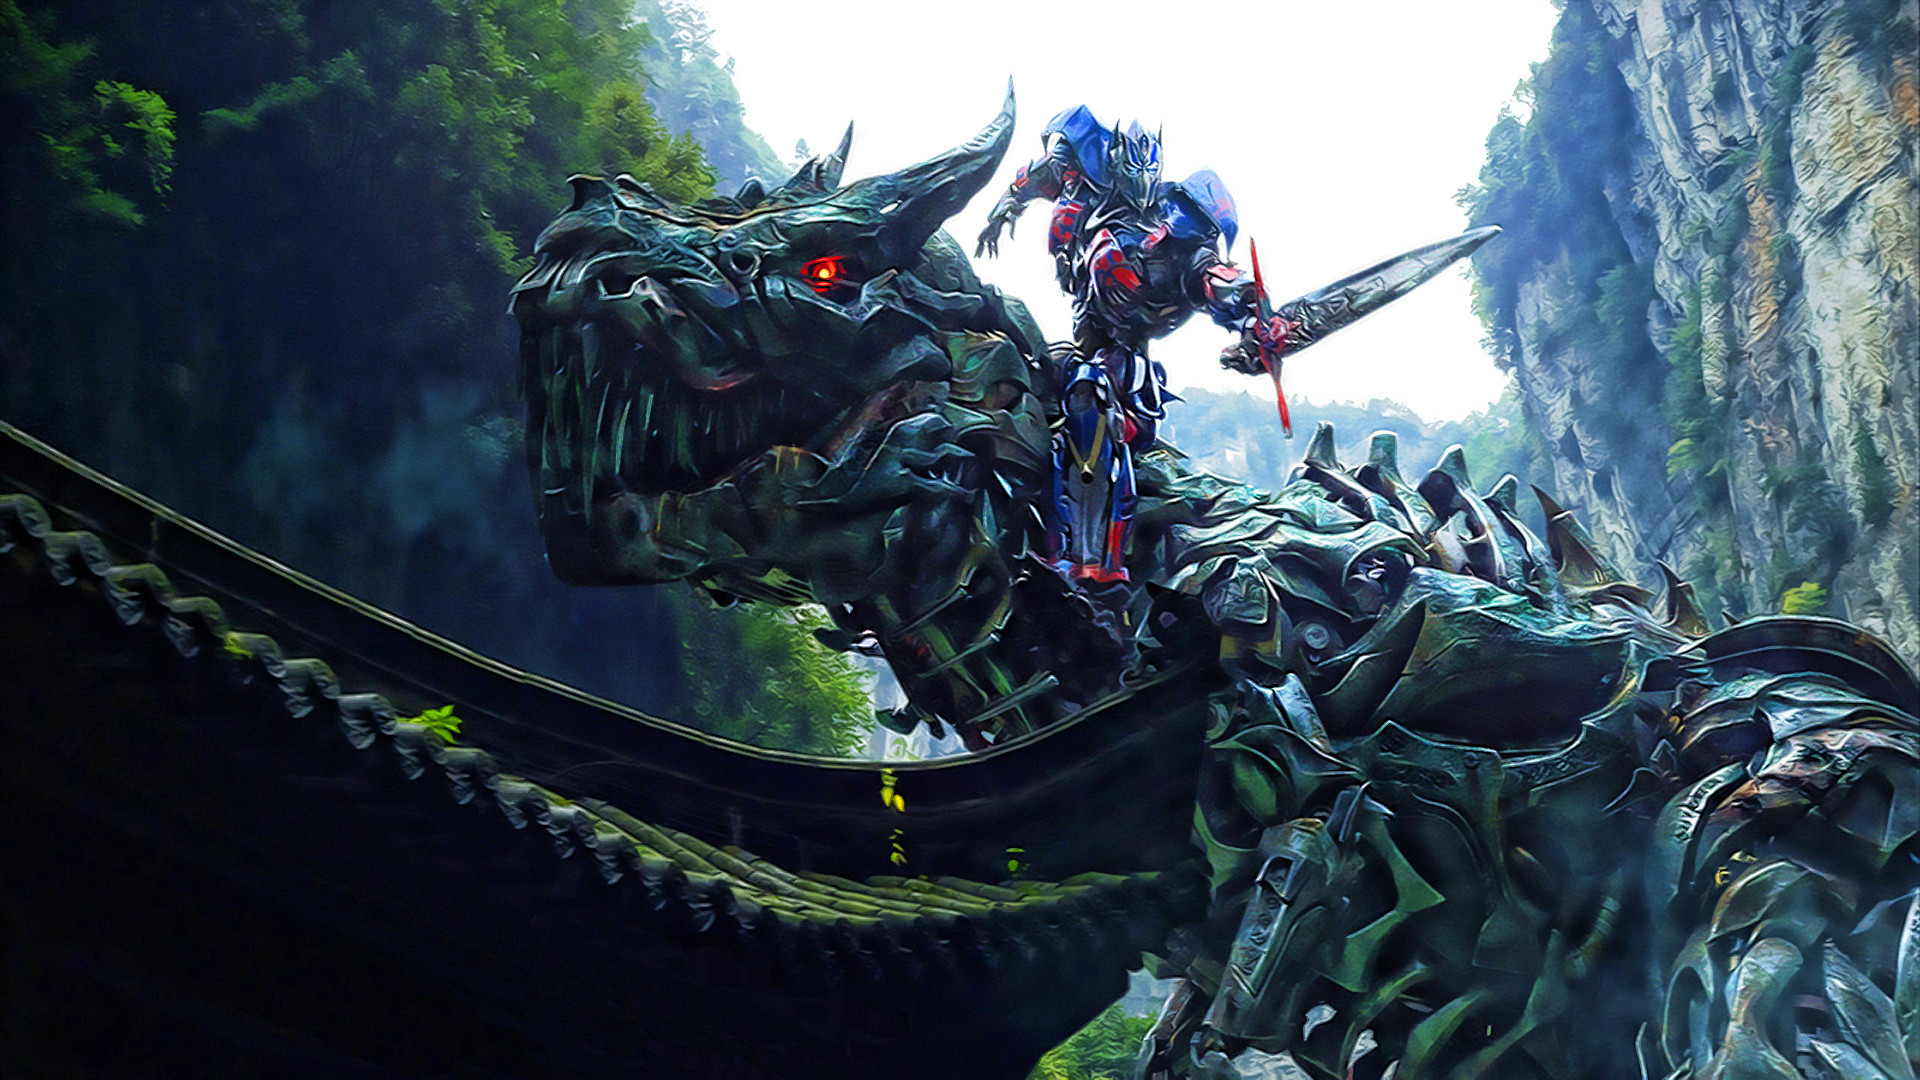 Director Michael Bay and Producer Steven Spielberg return this summer for  the fourth film in the Transformers franchise, Transformers: Age of  Extinction.